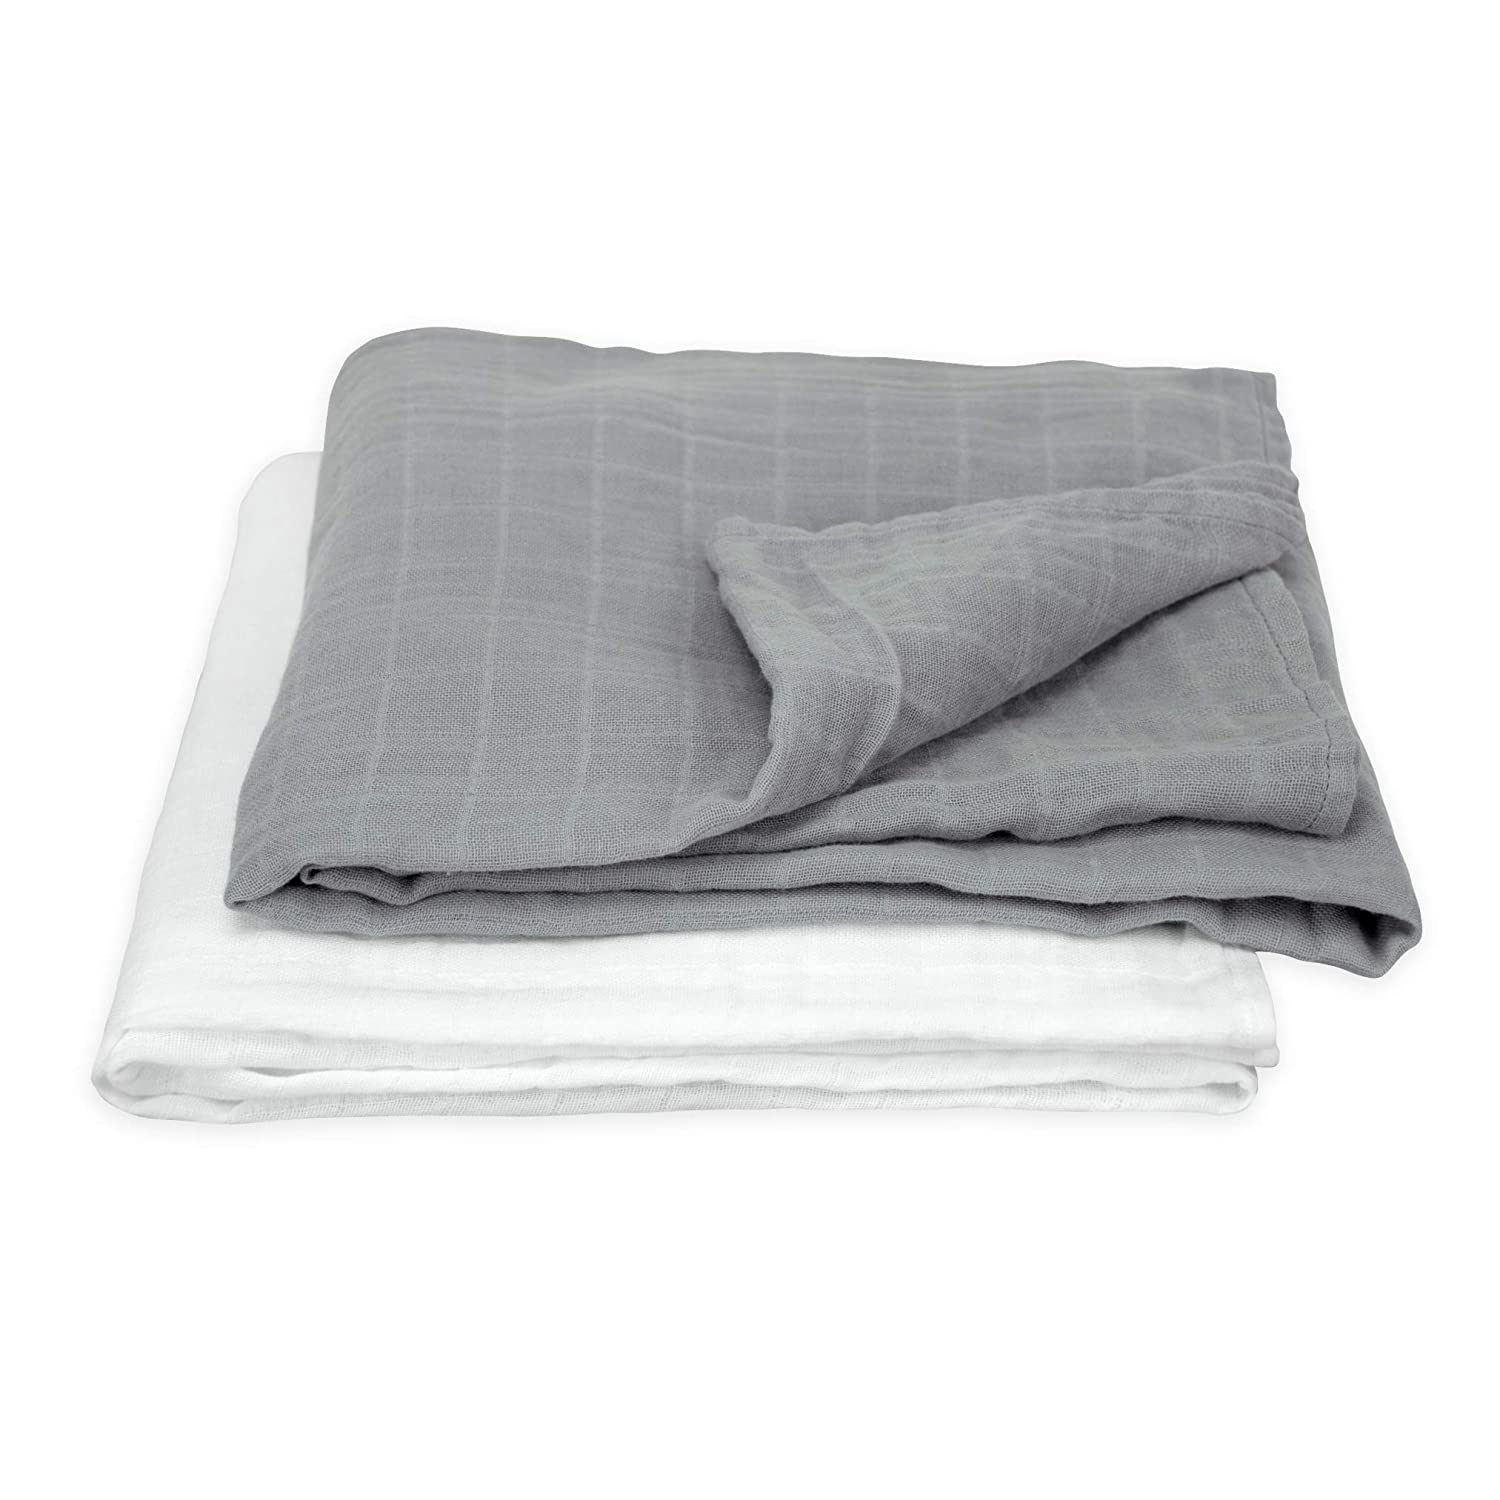 green sprouts Muslin Swaddle Blankets made from Organic Cotton   Generously sized for easy swaddling   Super soft & softer with every wash, Gray Set